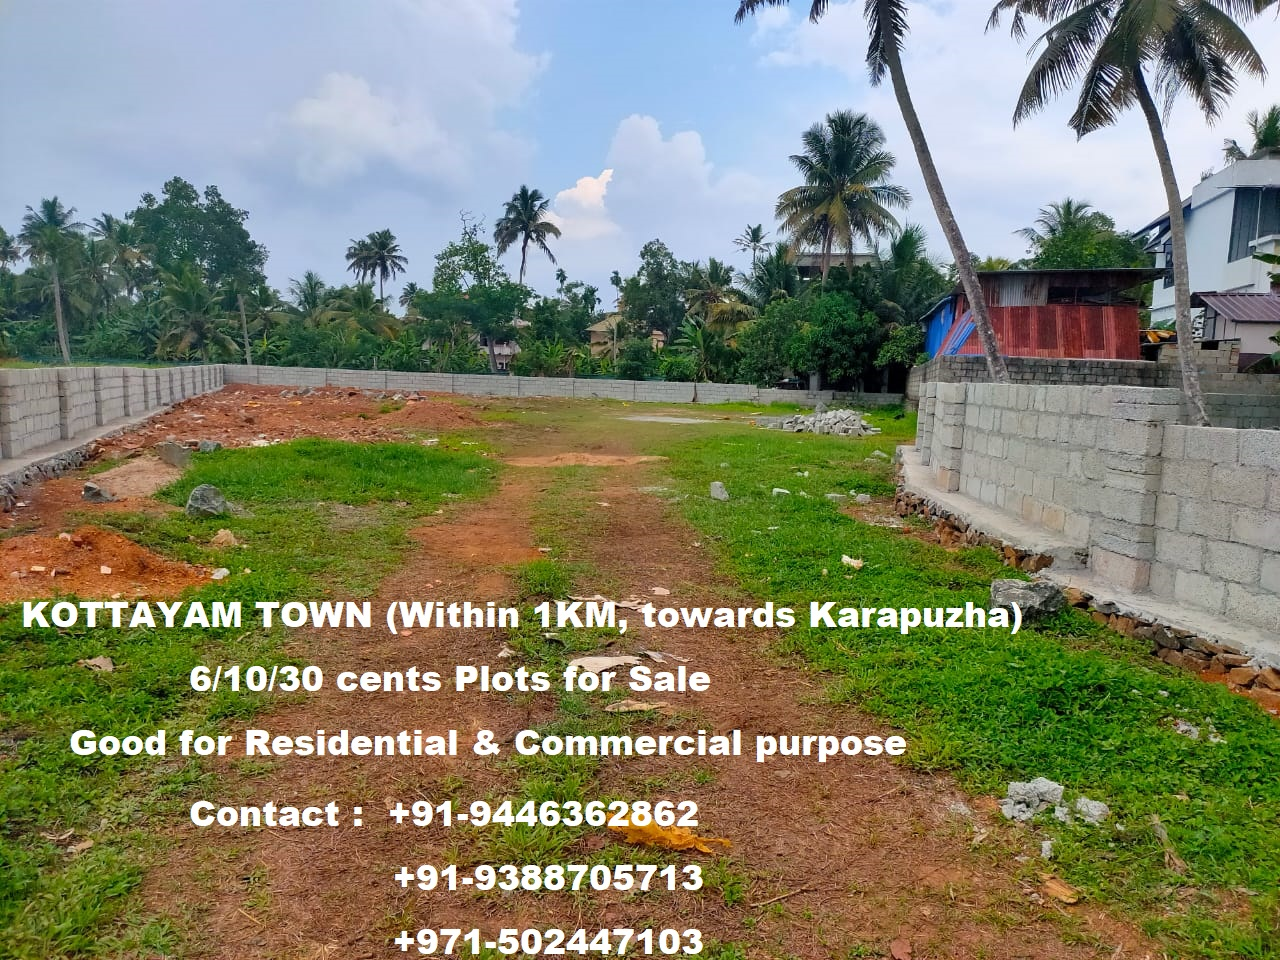 6/10/30 cents Plots ( Residential & Commercial purpose) for Sale at Kottayam Town